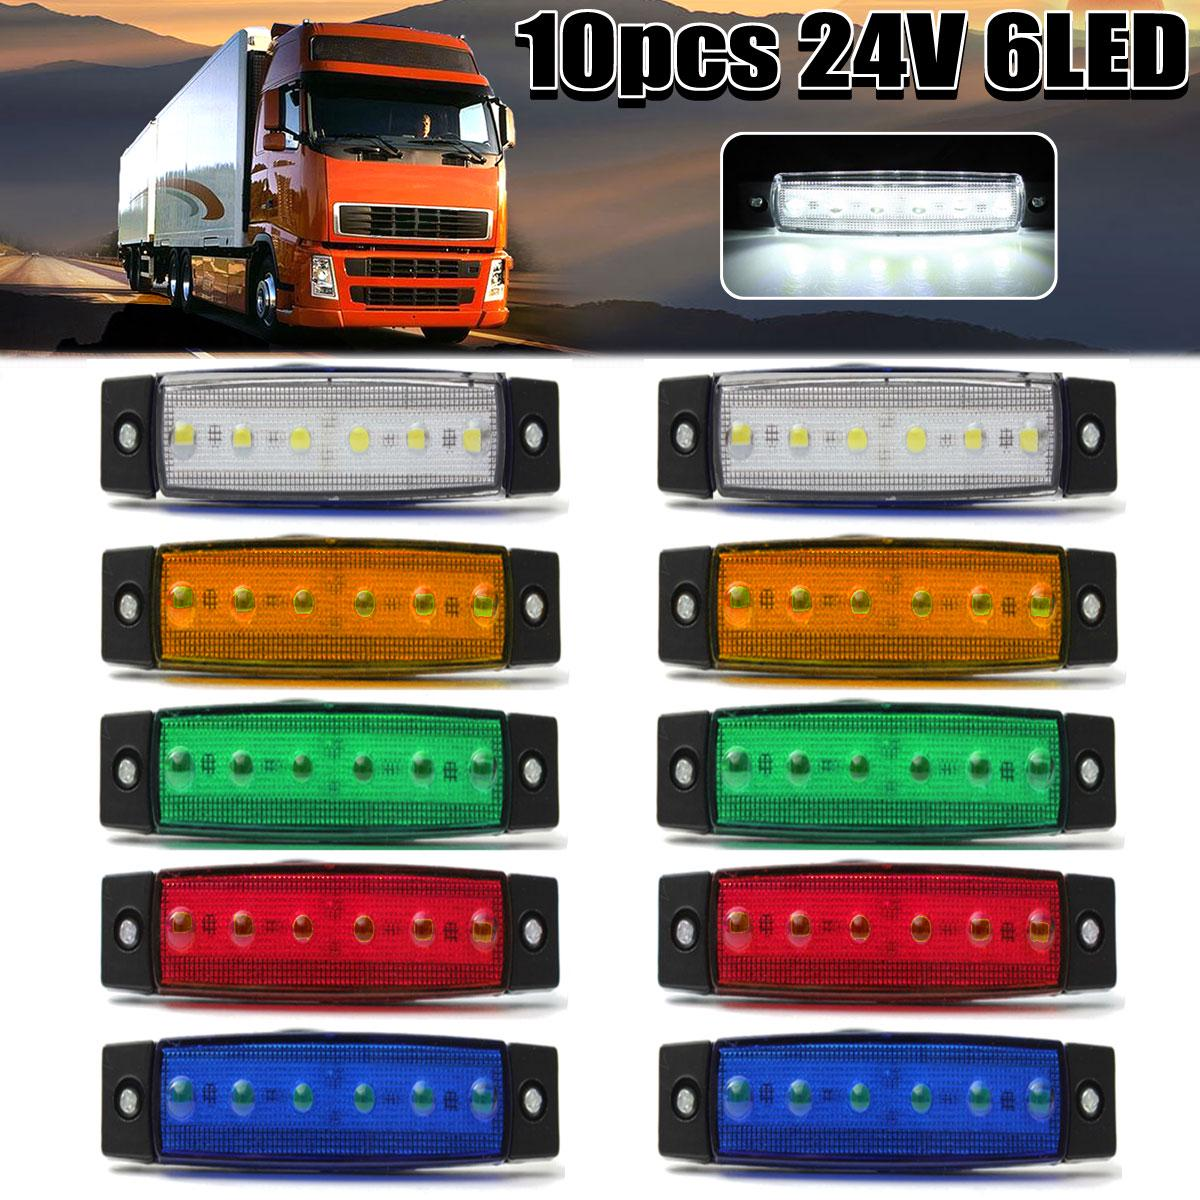 60/30/10/5/1 PCS 24V 6 LED Side Marker Indicator Light Signal lamp External Lights Rear Tail Lamp Lighting DRL For Car Vehicle Bus Truck Trailer Lorry